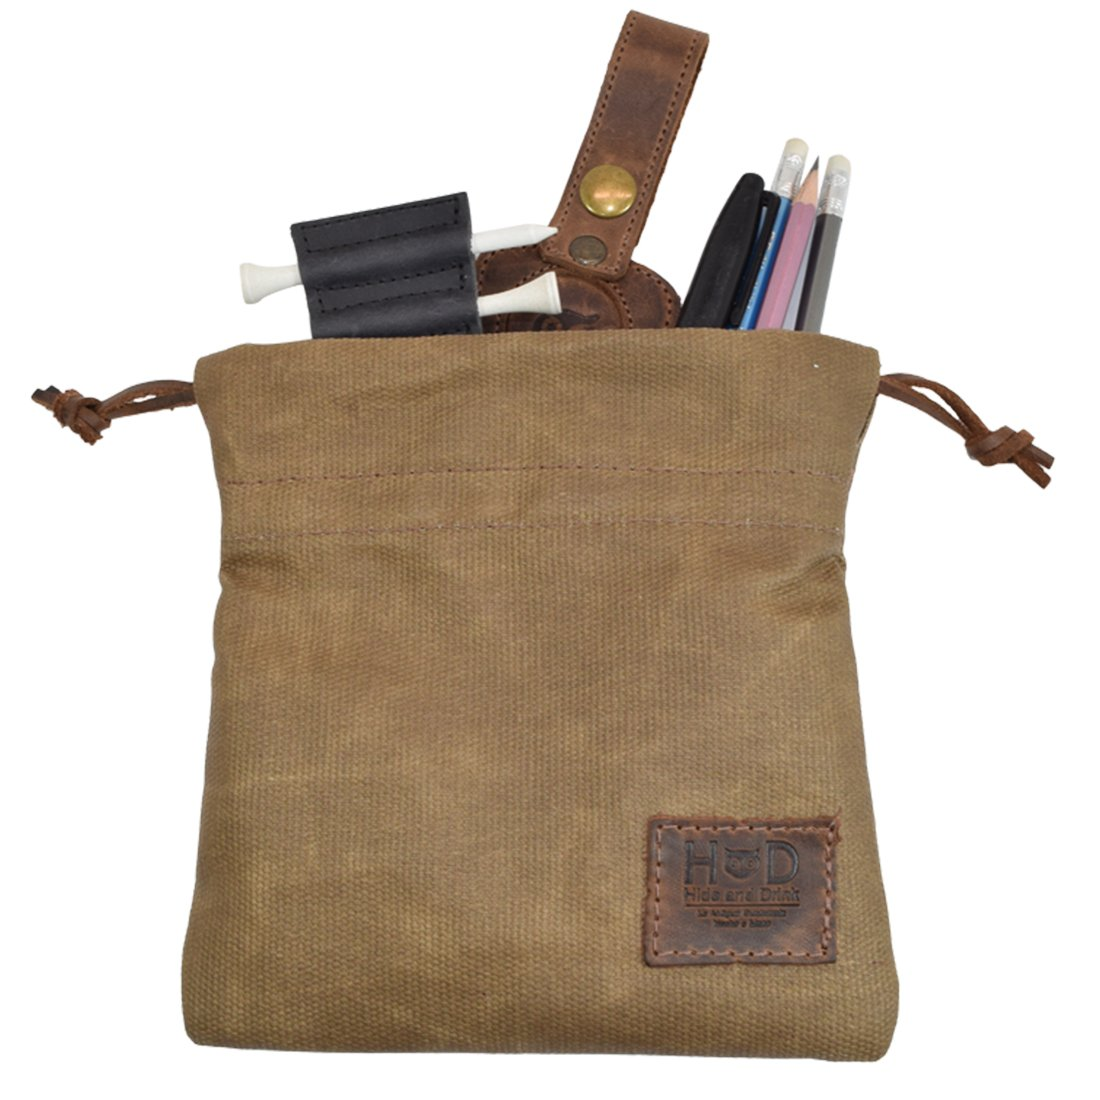 Hide & Drink Waxed Canvas Golf Valuables Field/Travel / Tech/Board Game Dice Pouch Handmade by Fatigue